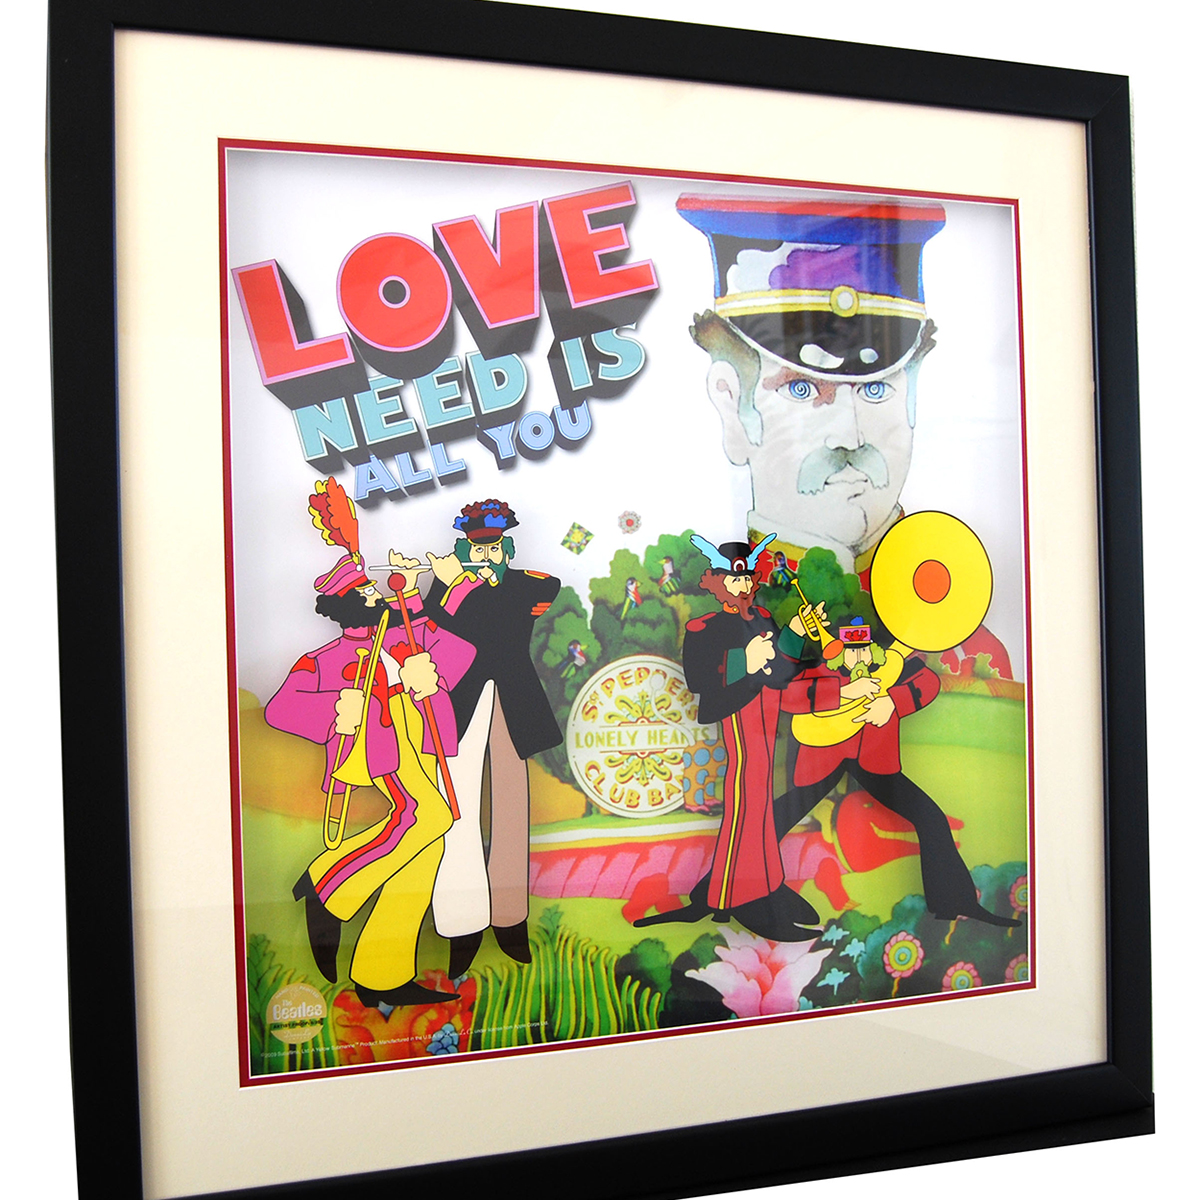 Sgt. Peppers Loney Hearts Club Band